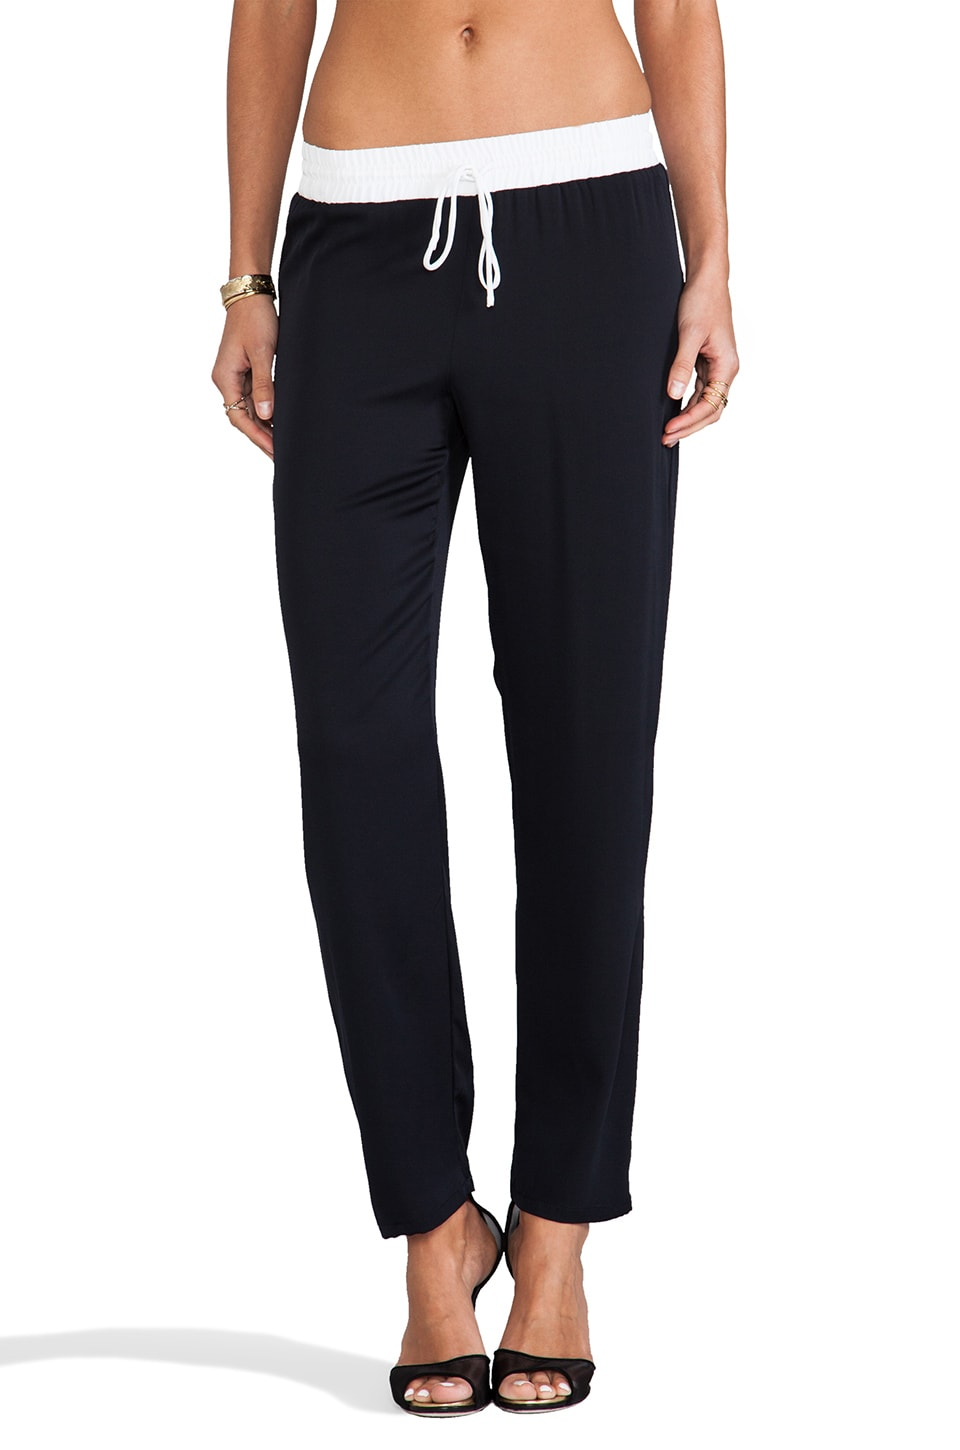 Bailey 44 Penalty Pant in Navy & White